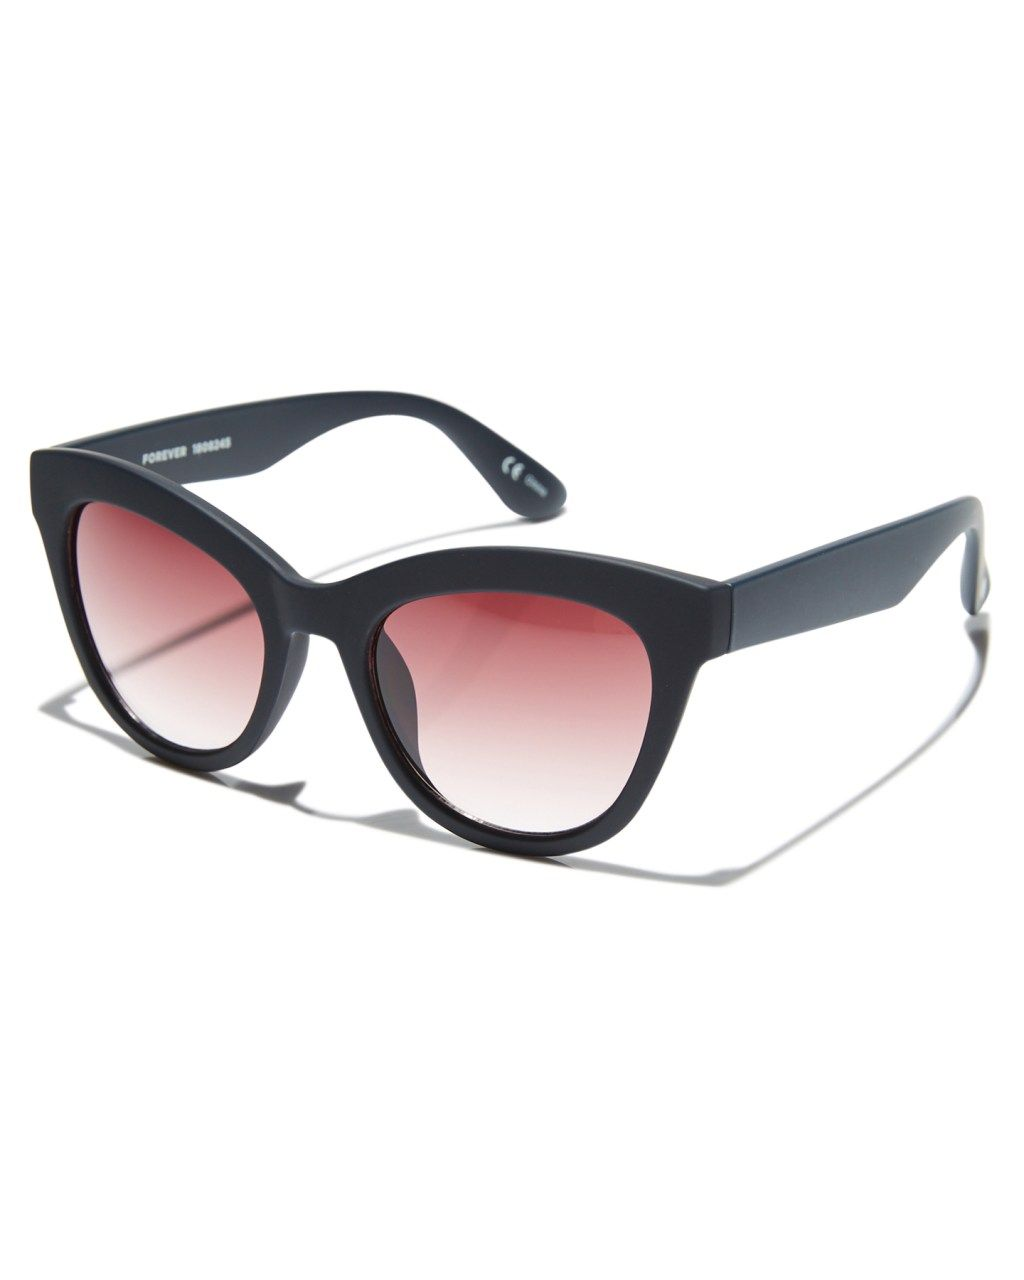 95c3171eb5d4 Minkpink Forever Sunglasses Black Womens sunglasses Size Cat Eye Frames,  Budget Fashion, Minkpink,